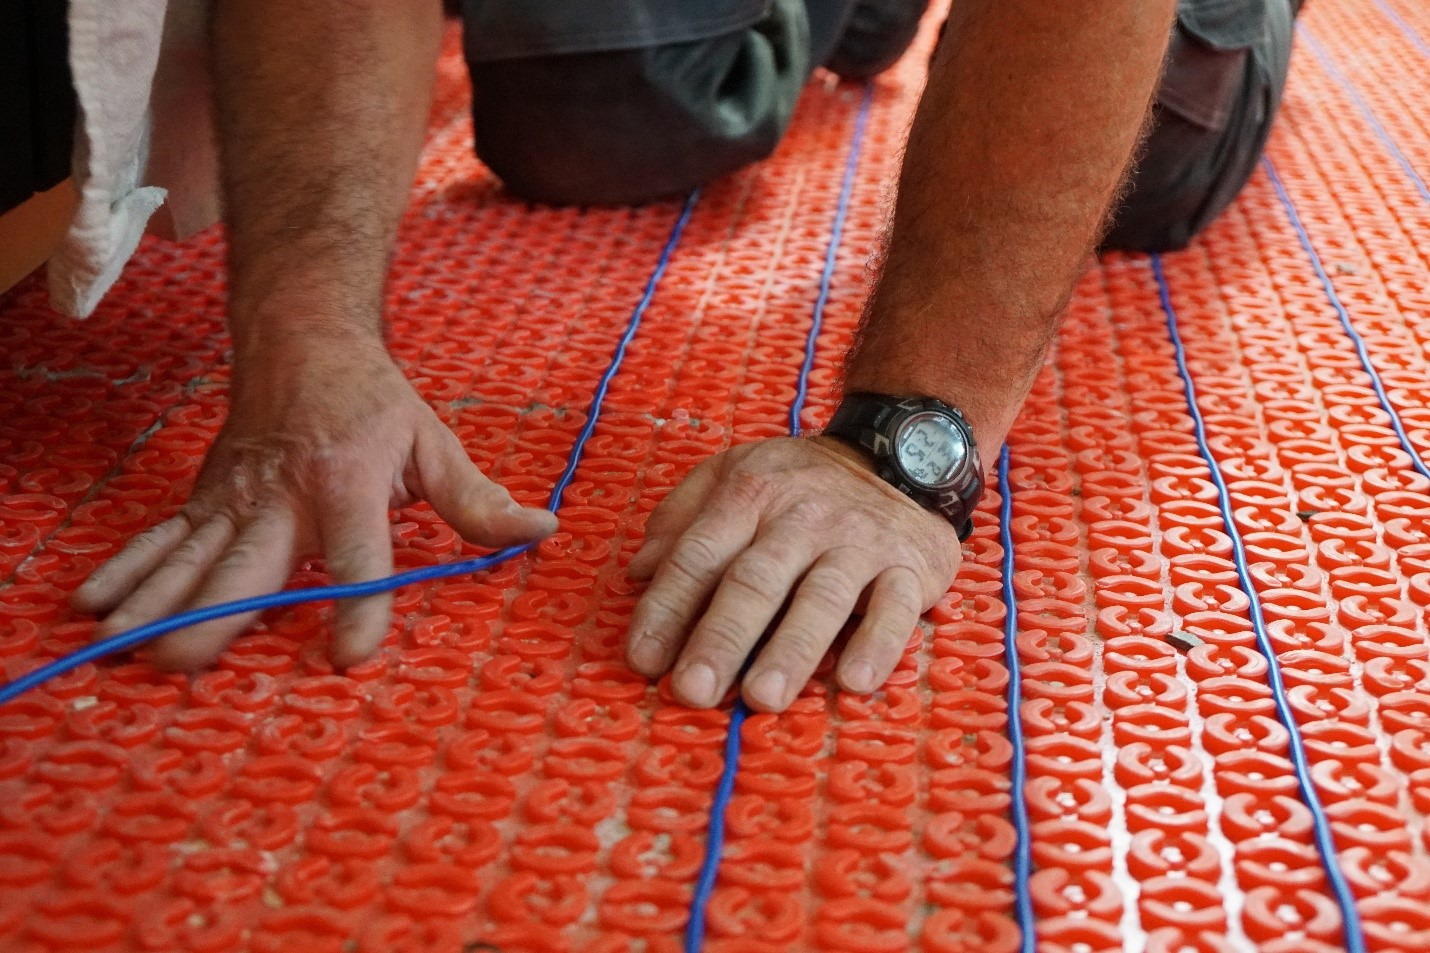 Warmup Radiant Floor Heating